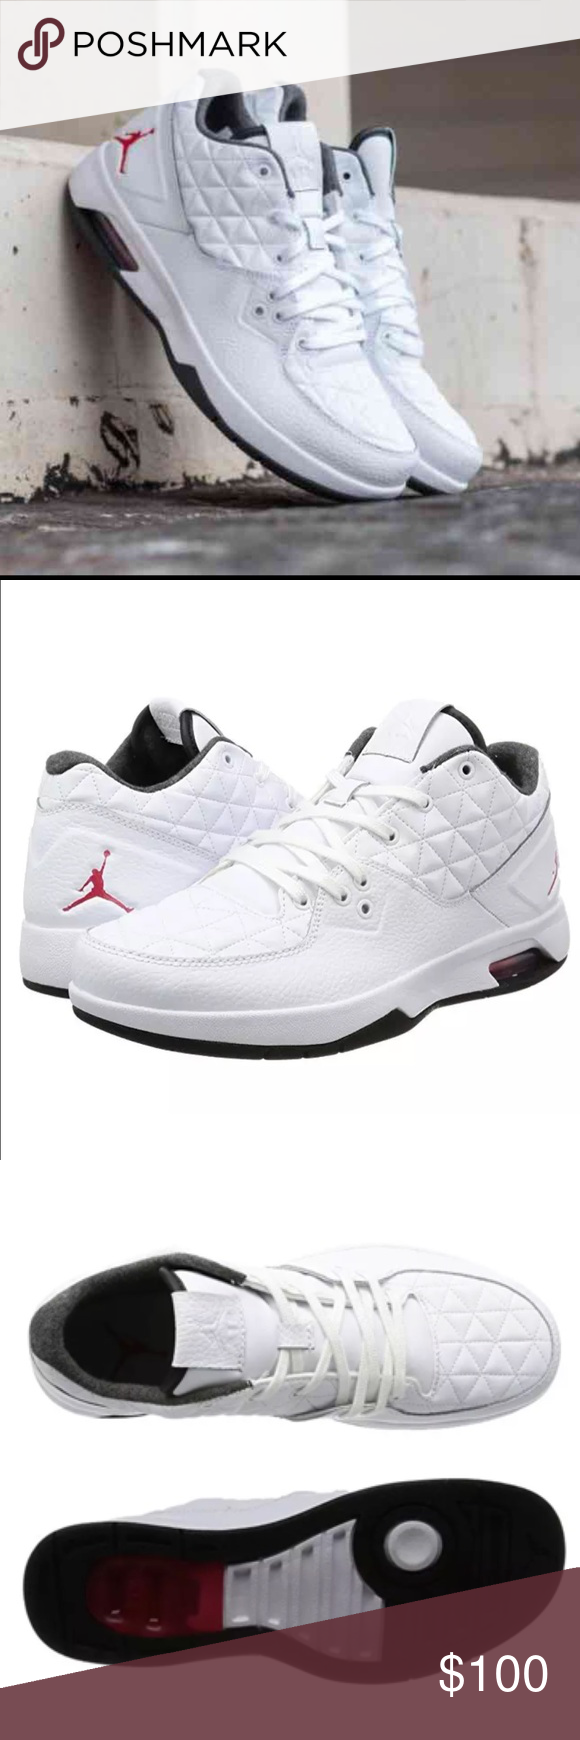 f0a8f57c59a927 Nike Air Jordan Clutch Basketball Sneaker for Men ✨Color  White   Black   Gym  Red ✨Available Sizes  -9 -9.5 Come in the clutch with a pair of Jordans for  ...